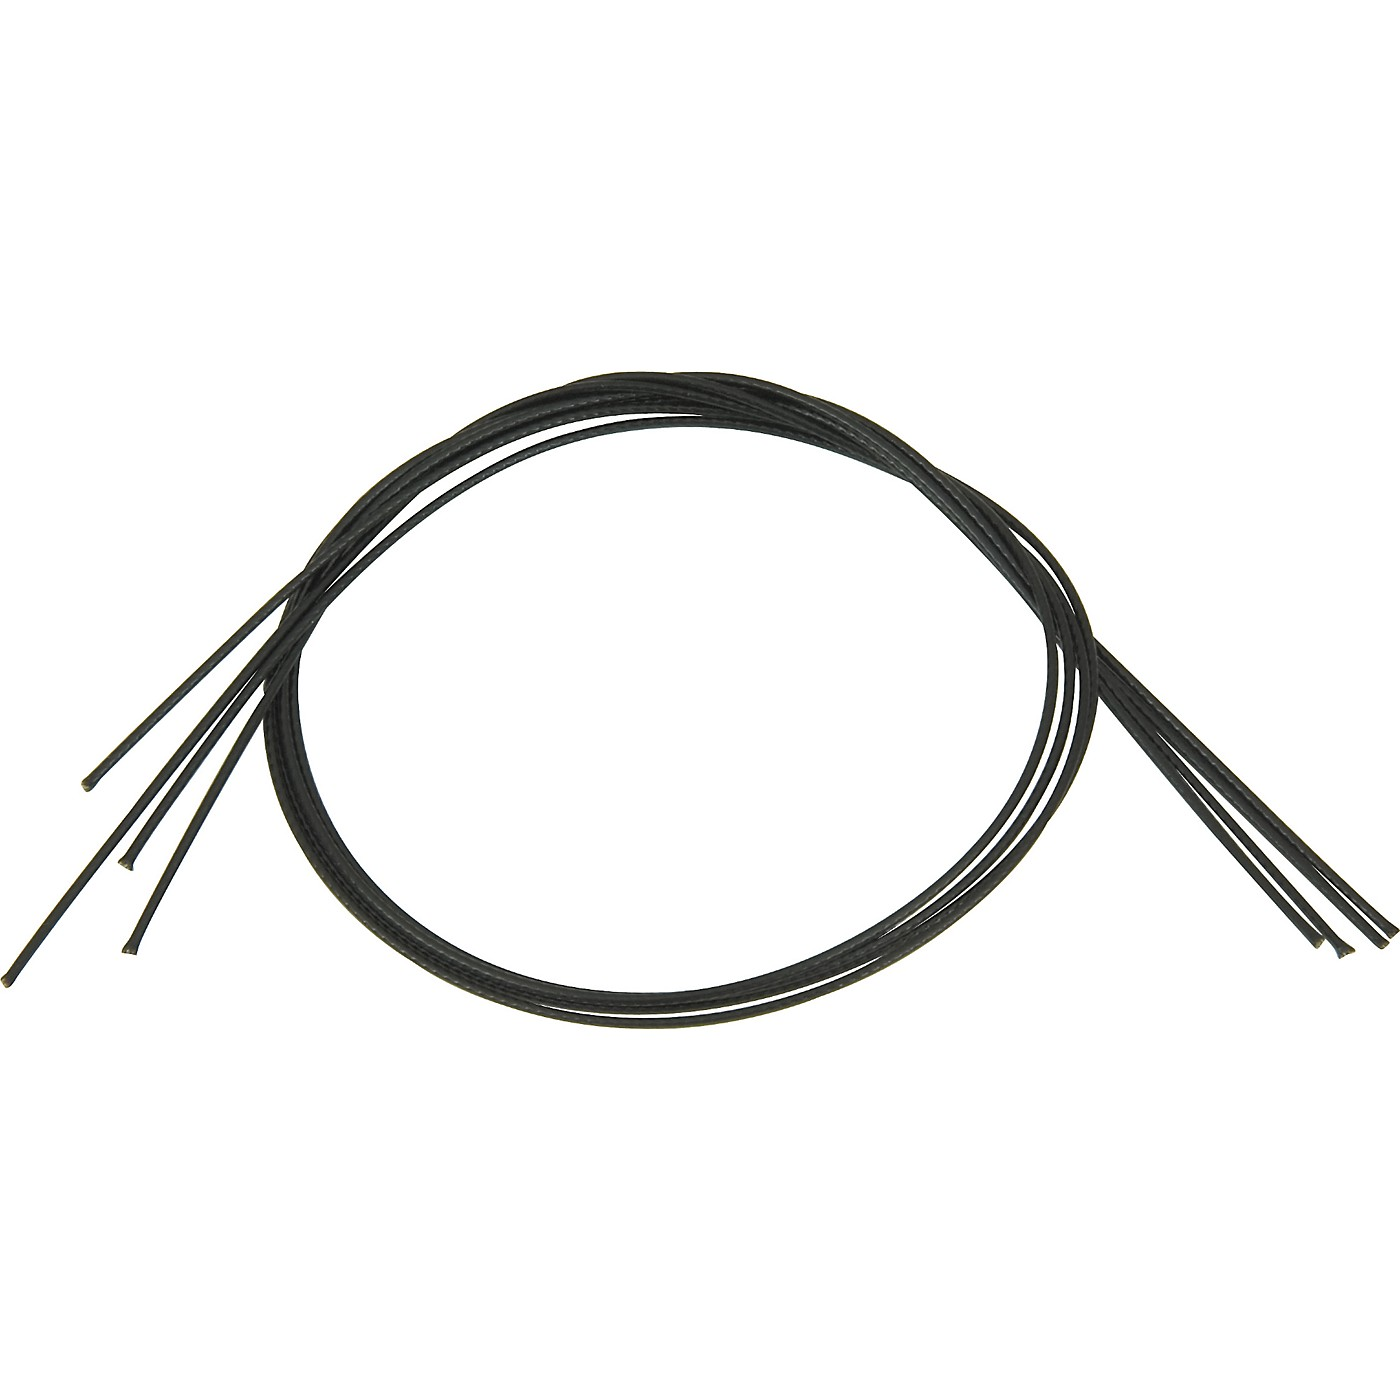 Trick Snare Drum Cord thumbnail